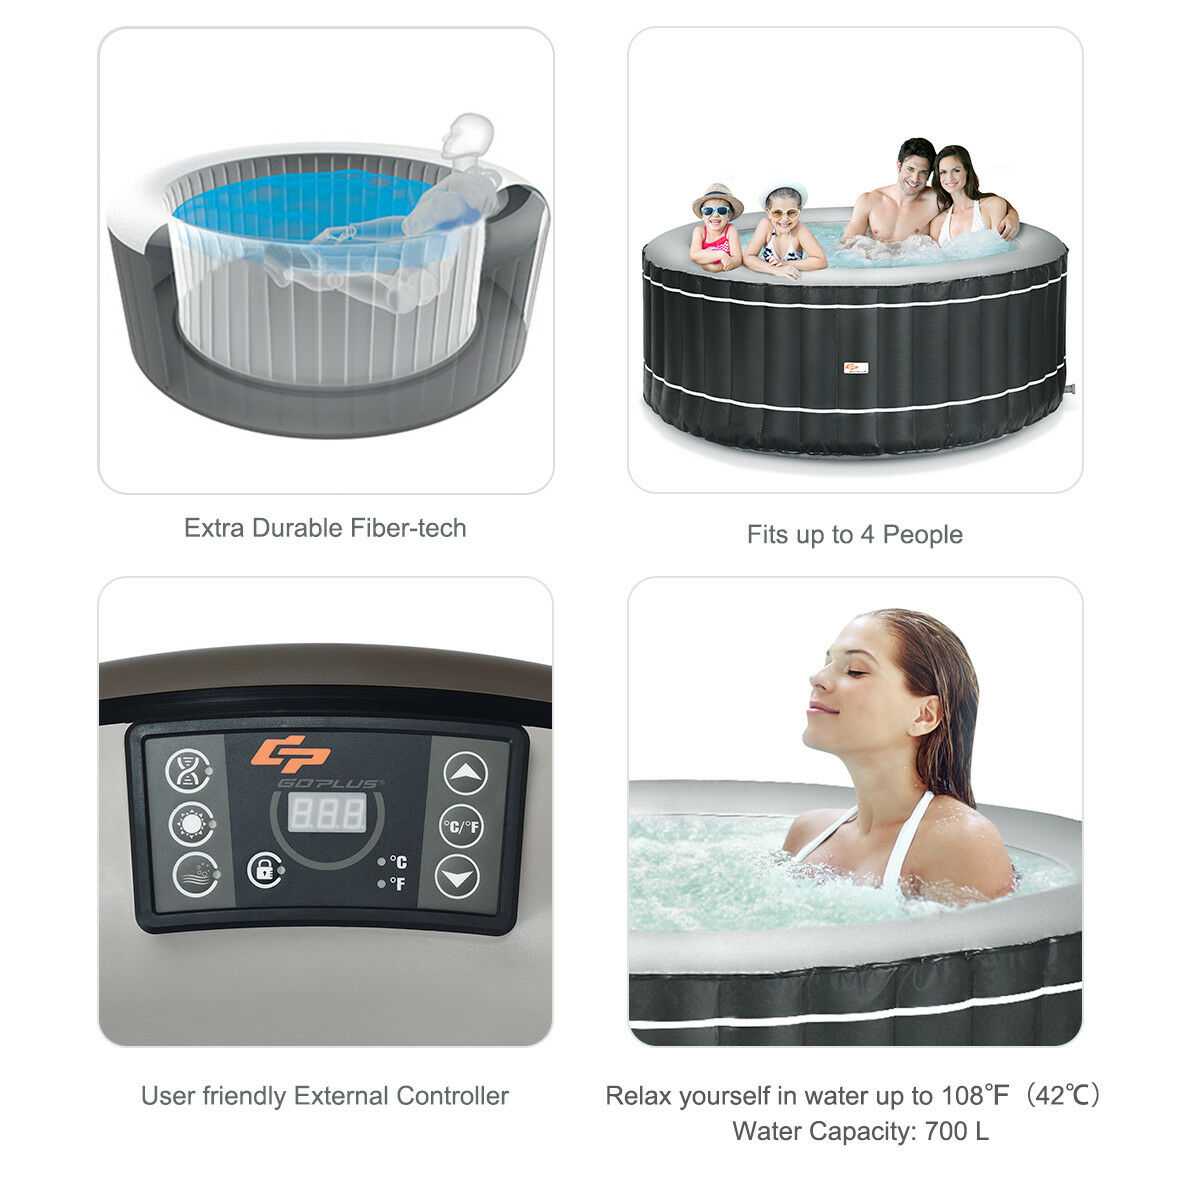 4-Person Inflatable Hot Tub Portable Outdoor Bubble Jet Leisure Massage Spa Gray - image 7 of 8